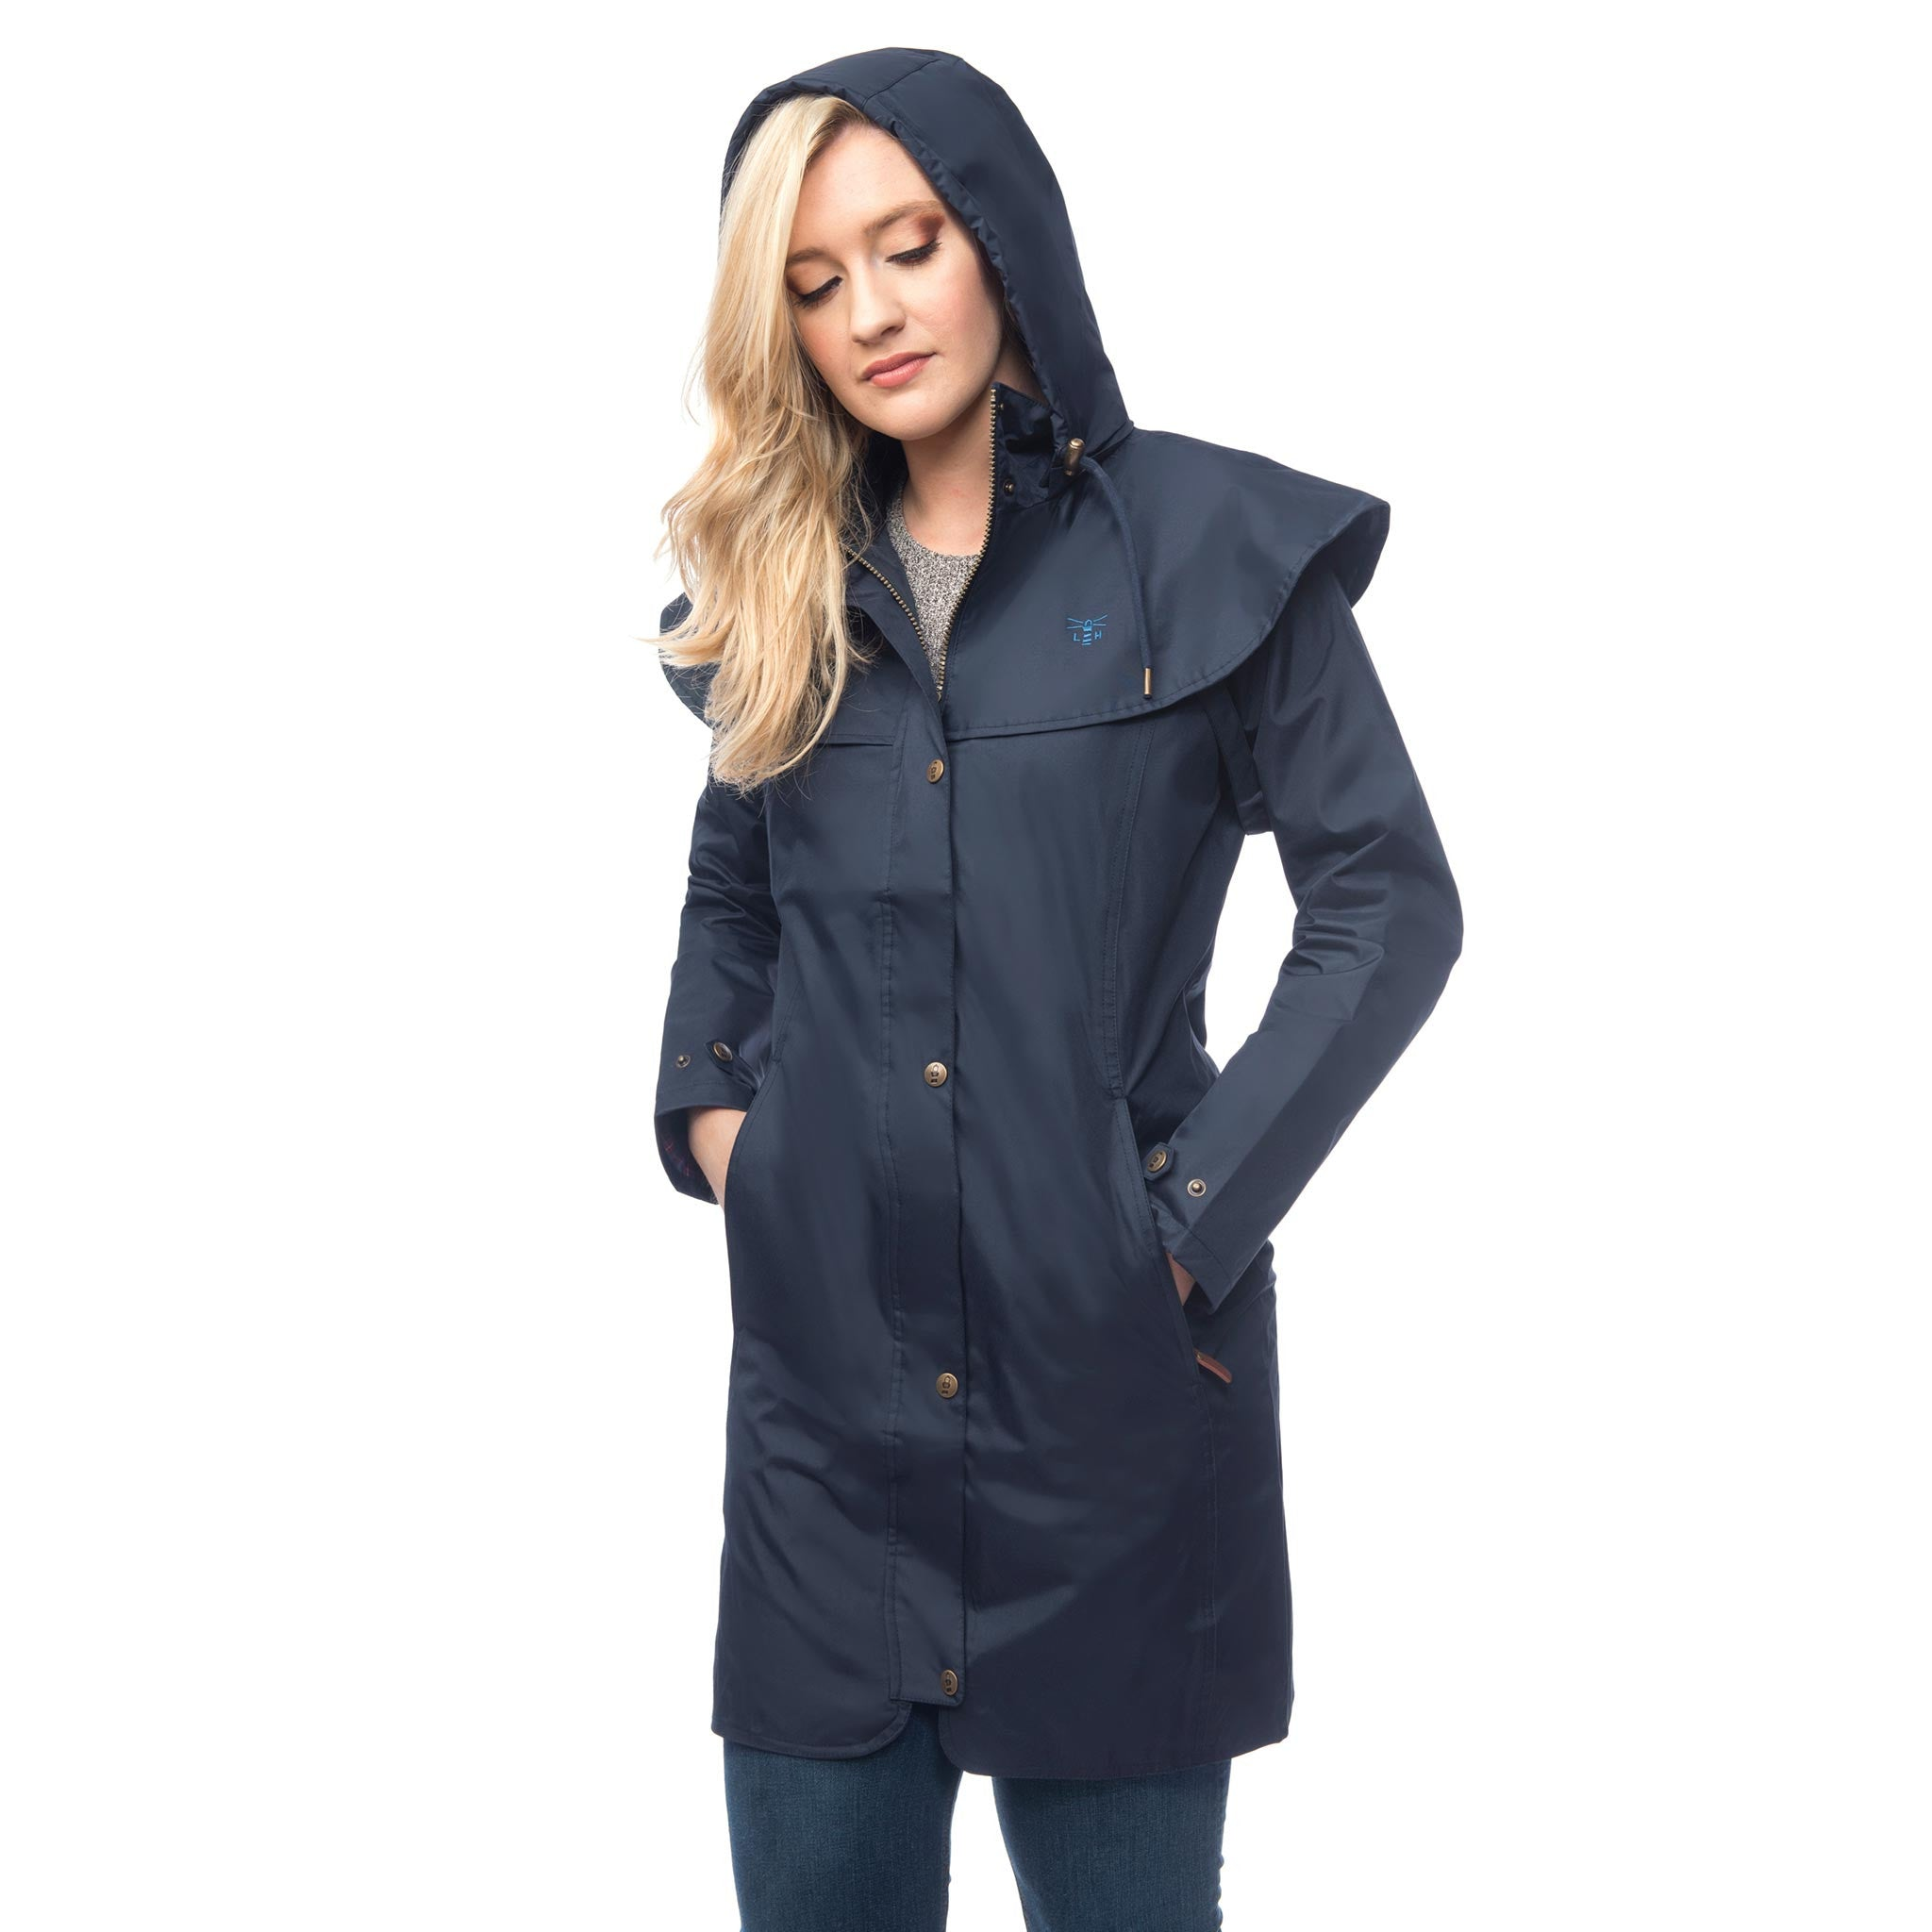 Lighthouse Womens Outrider 3/4 Length Waterproof Raincoat in Navy. Zipped & Buttoned. Hood up.